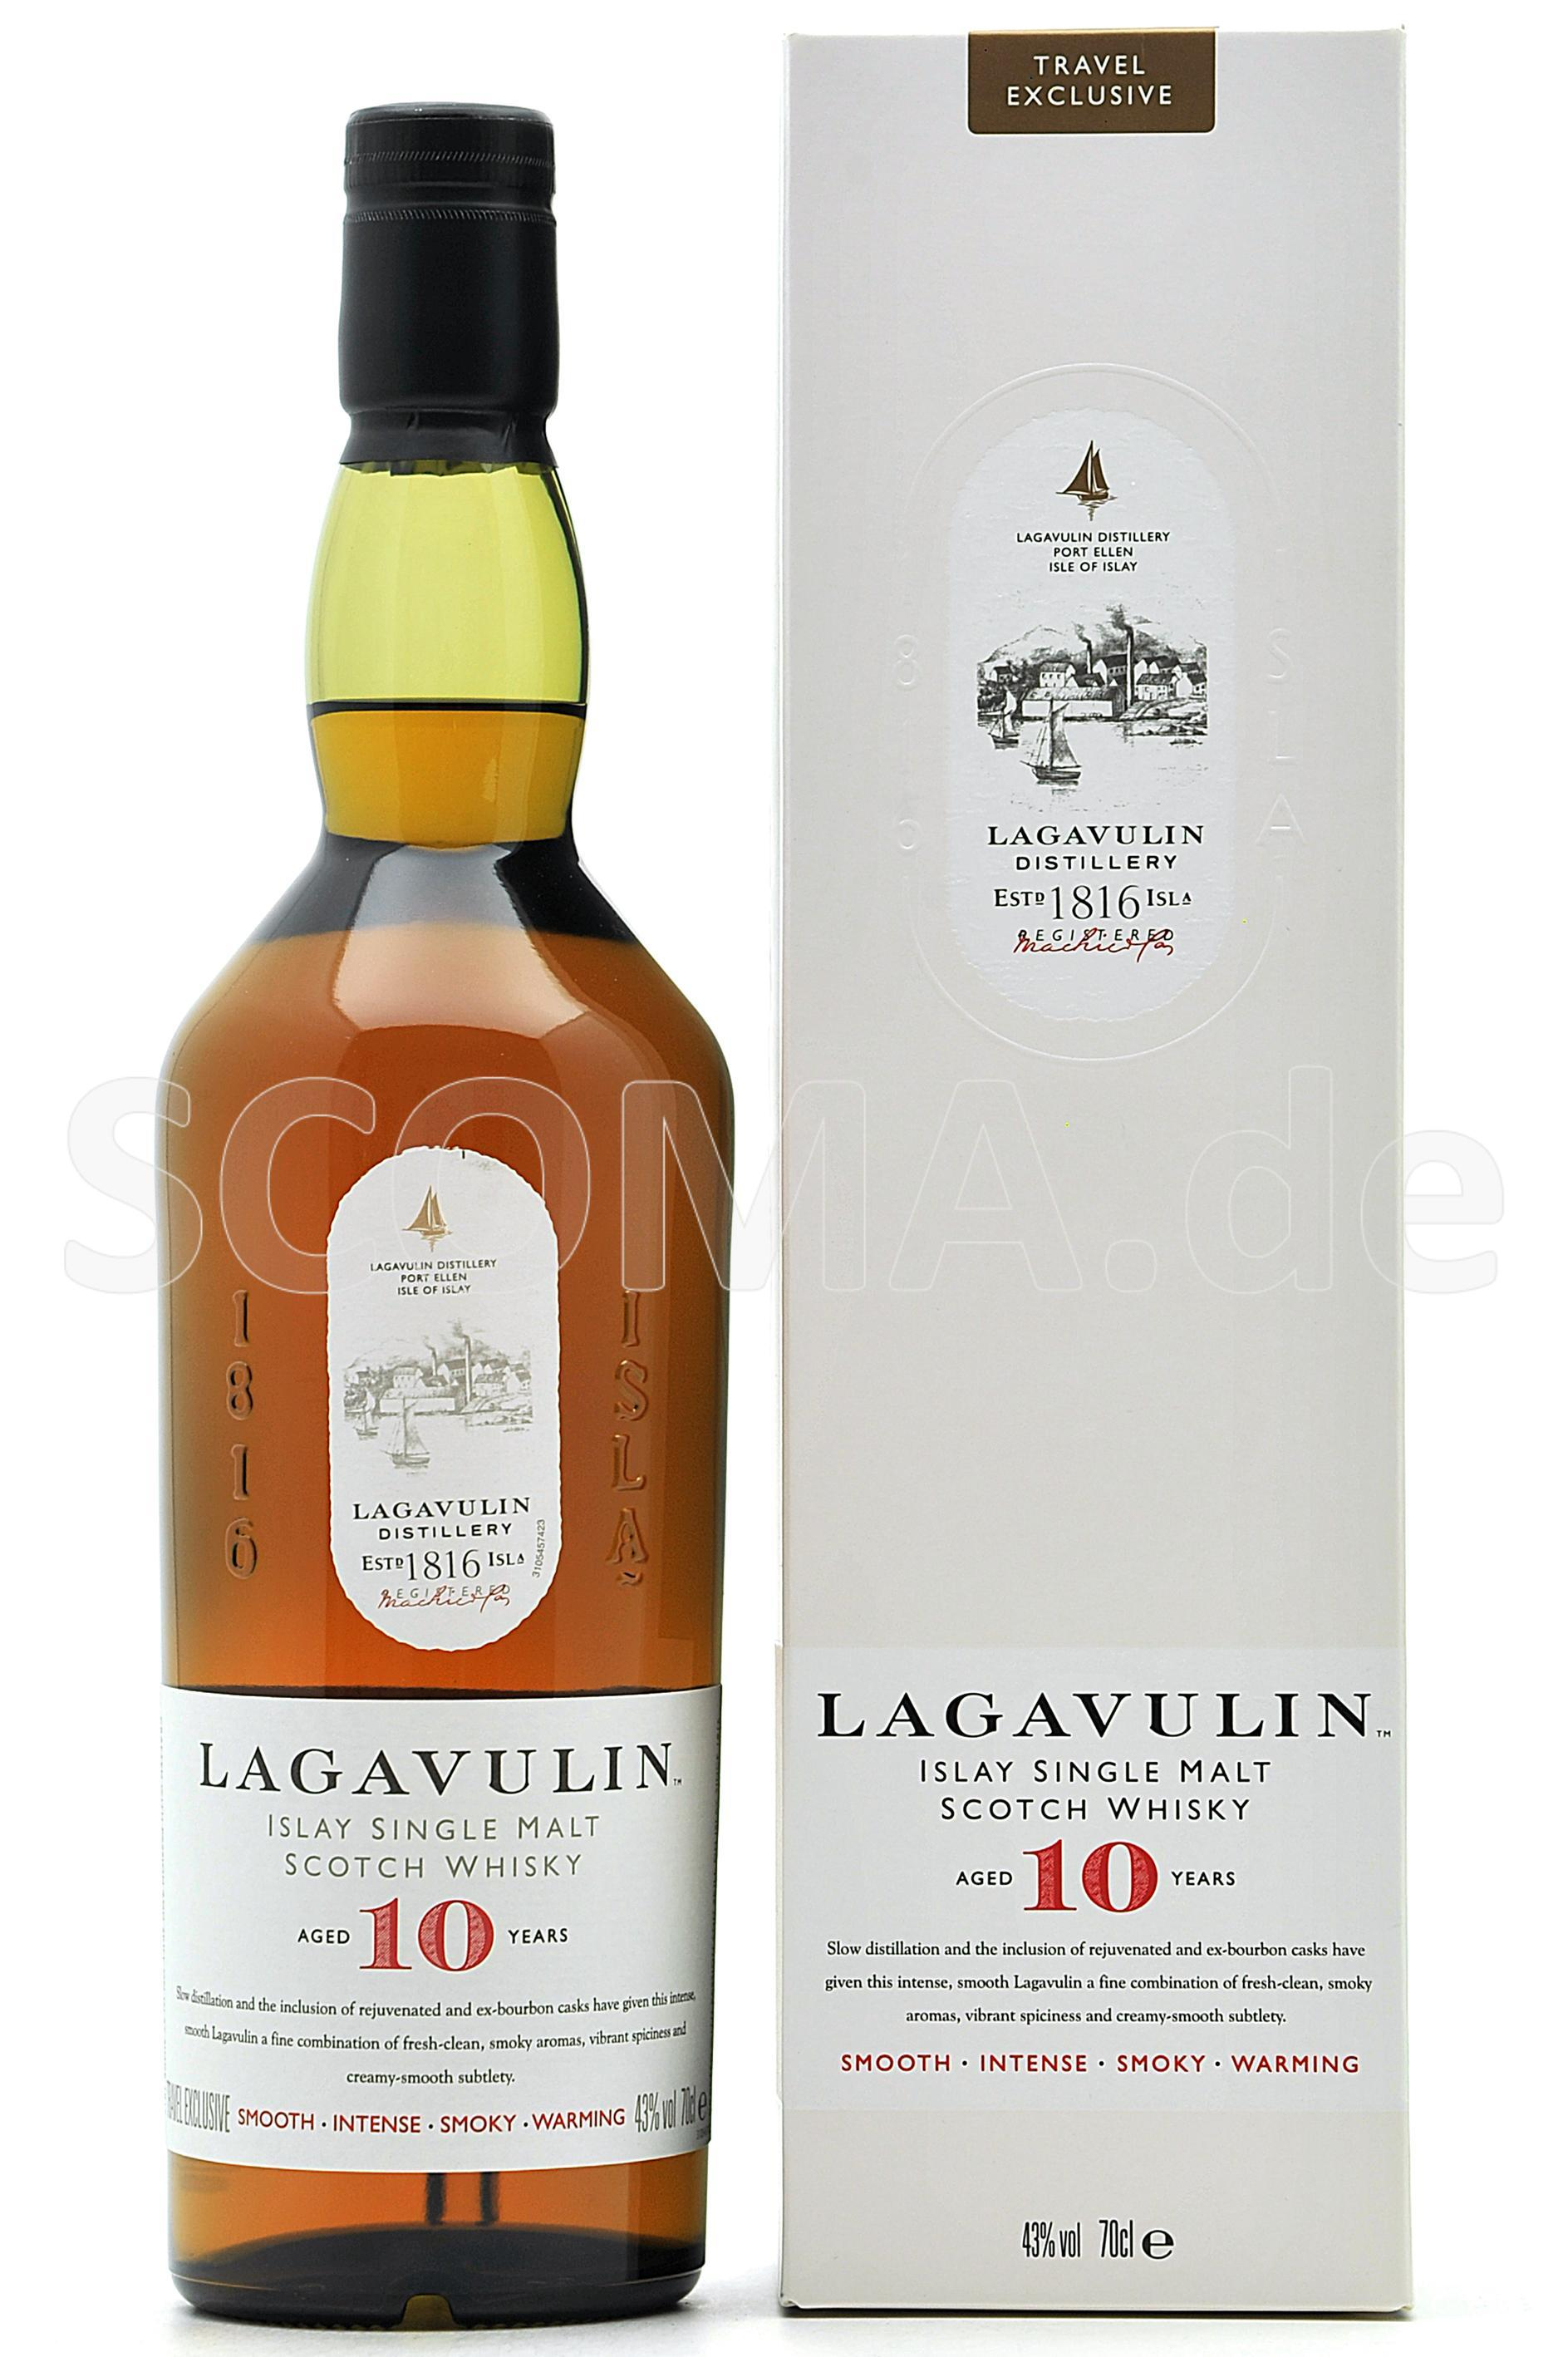 Lagavulin 10 Jahre Travel Excl...